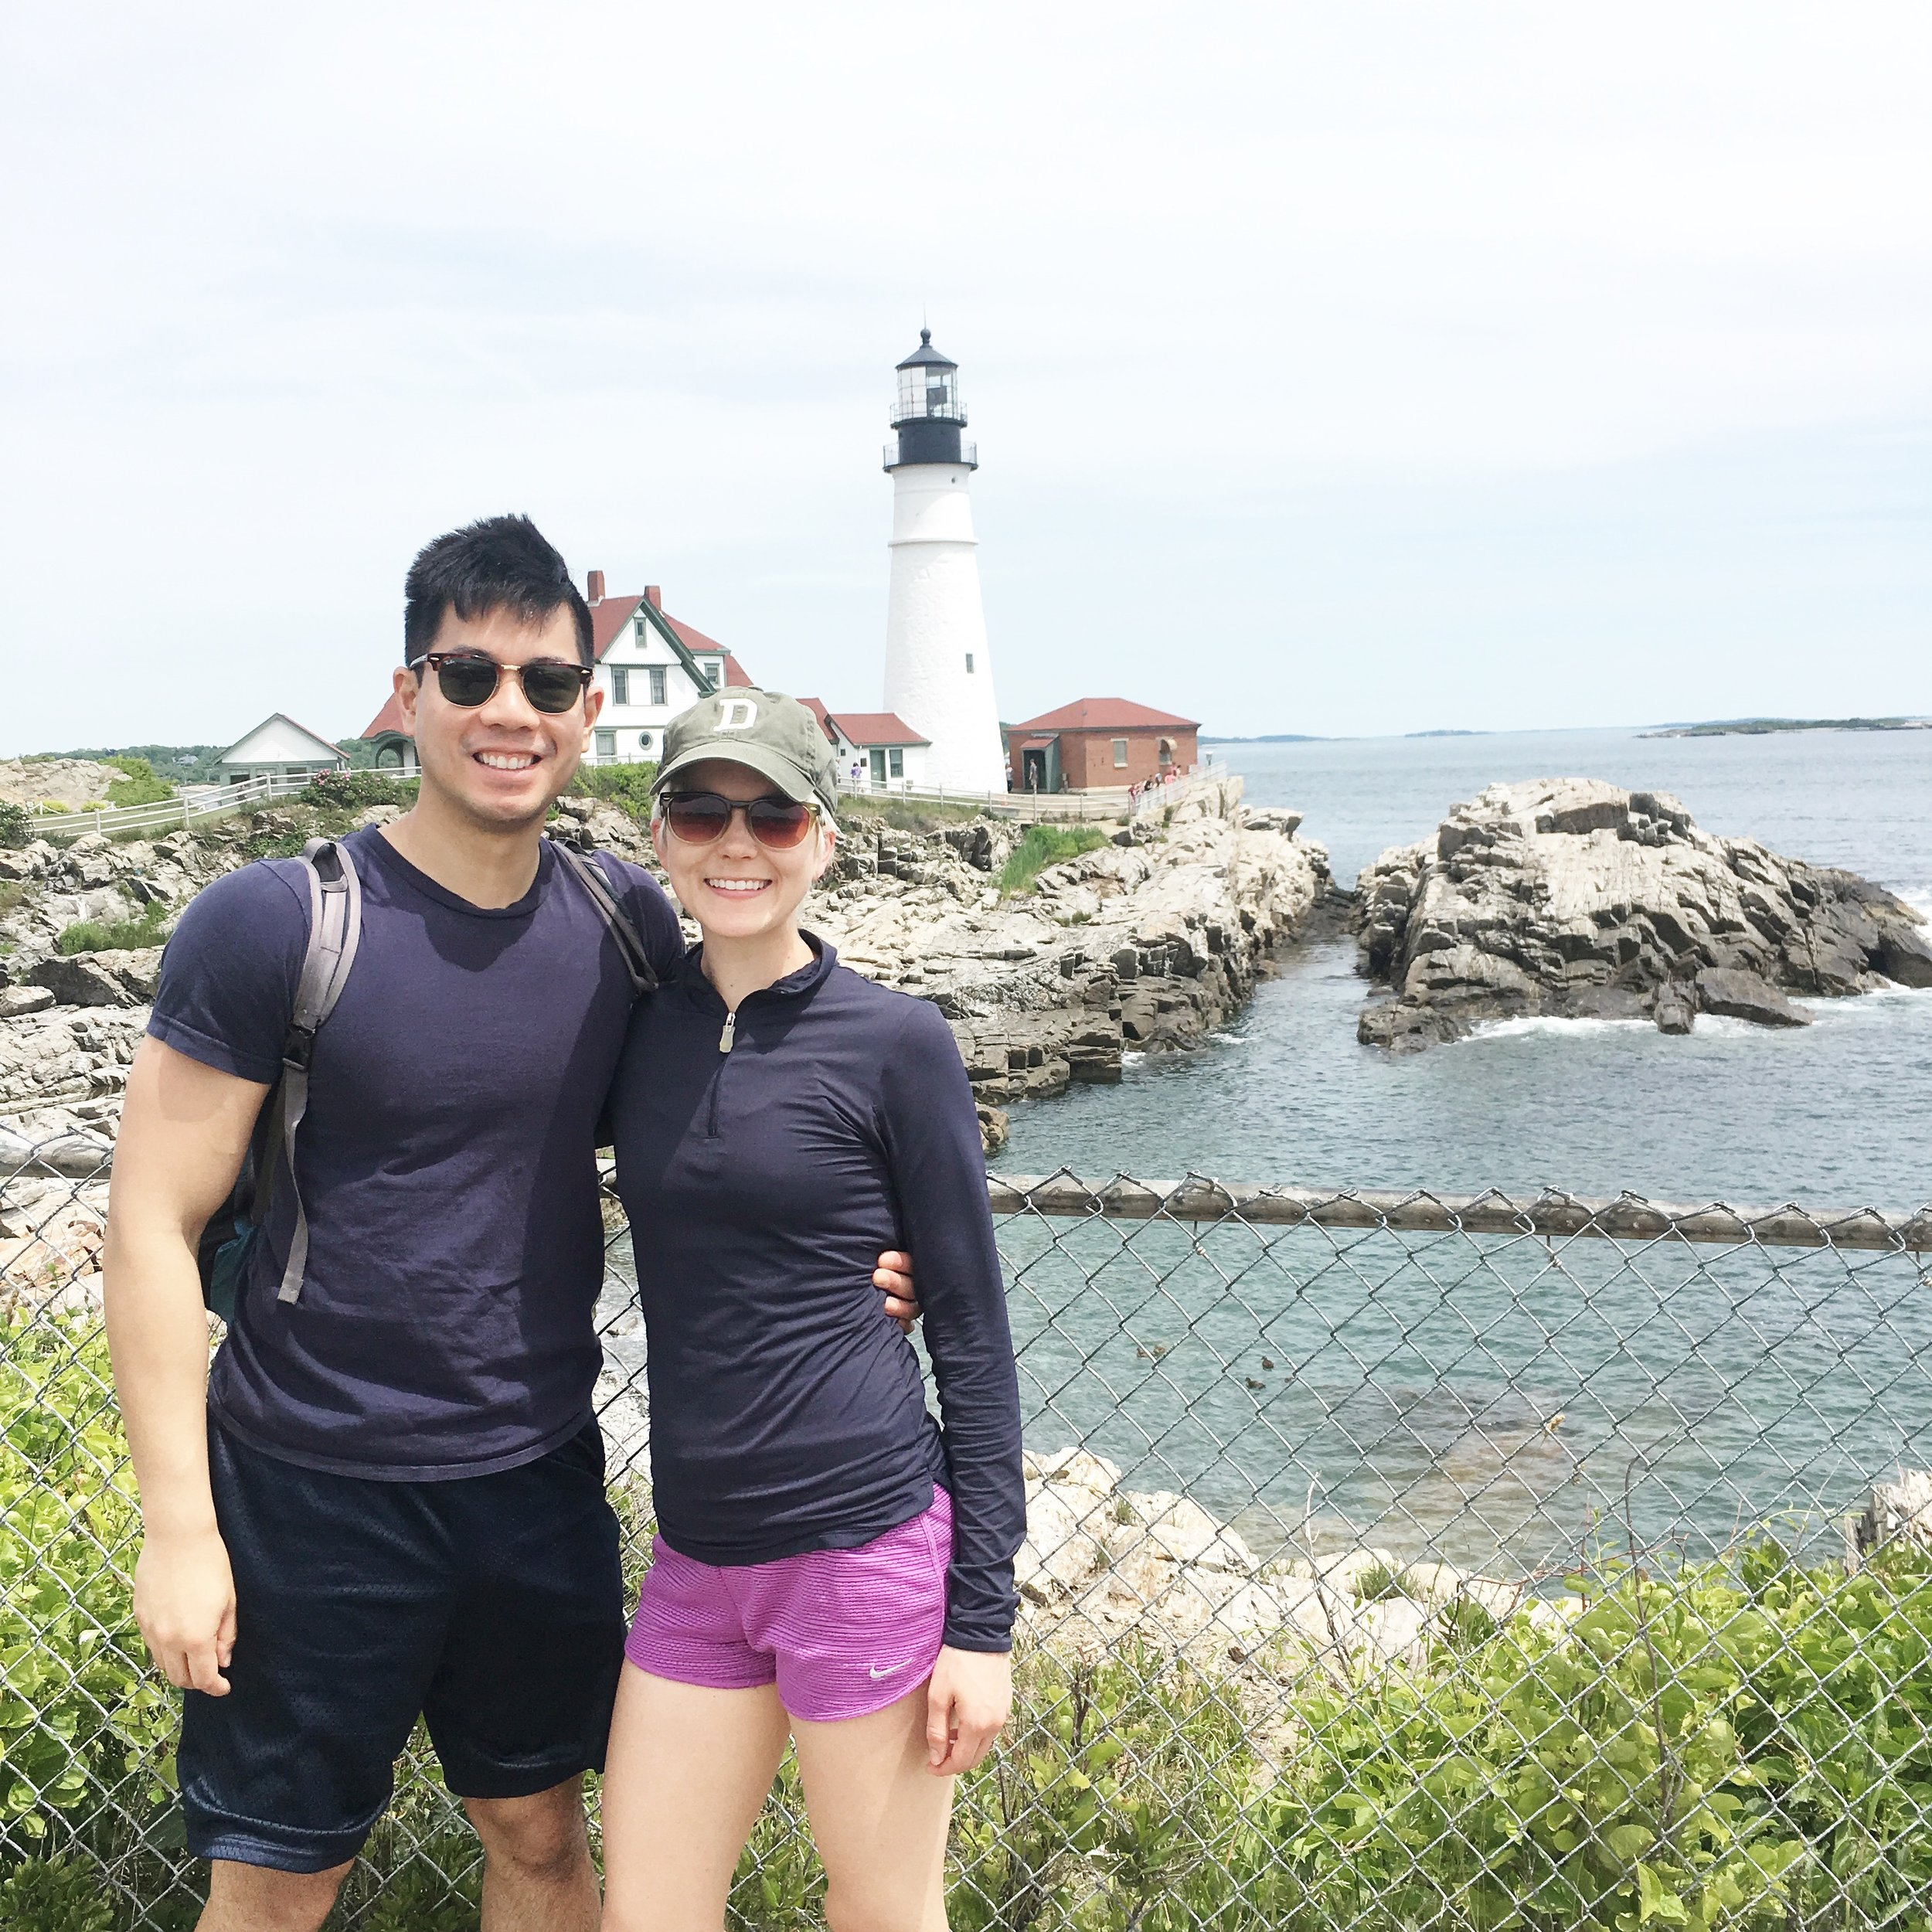 This is from a quick trip to Maine we took to see my sister and her family. We had to say forgo a lot of traveling because of my appointment and medication cycles, but this was a much-needed break from reality with lots of hugs from my niece and nephew.